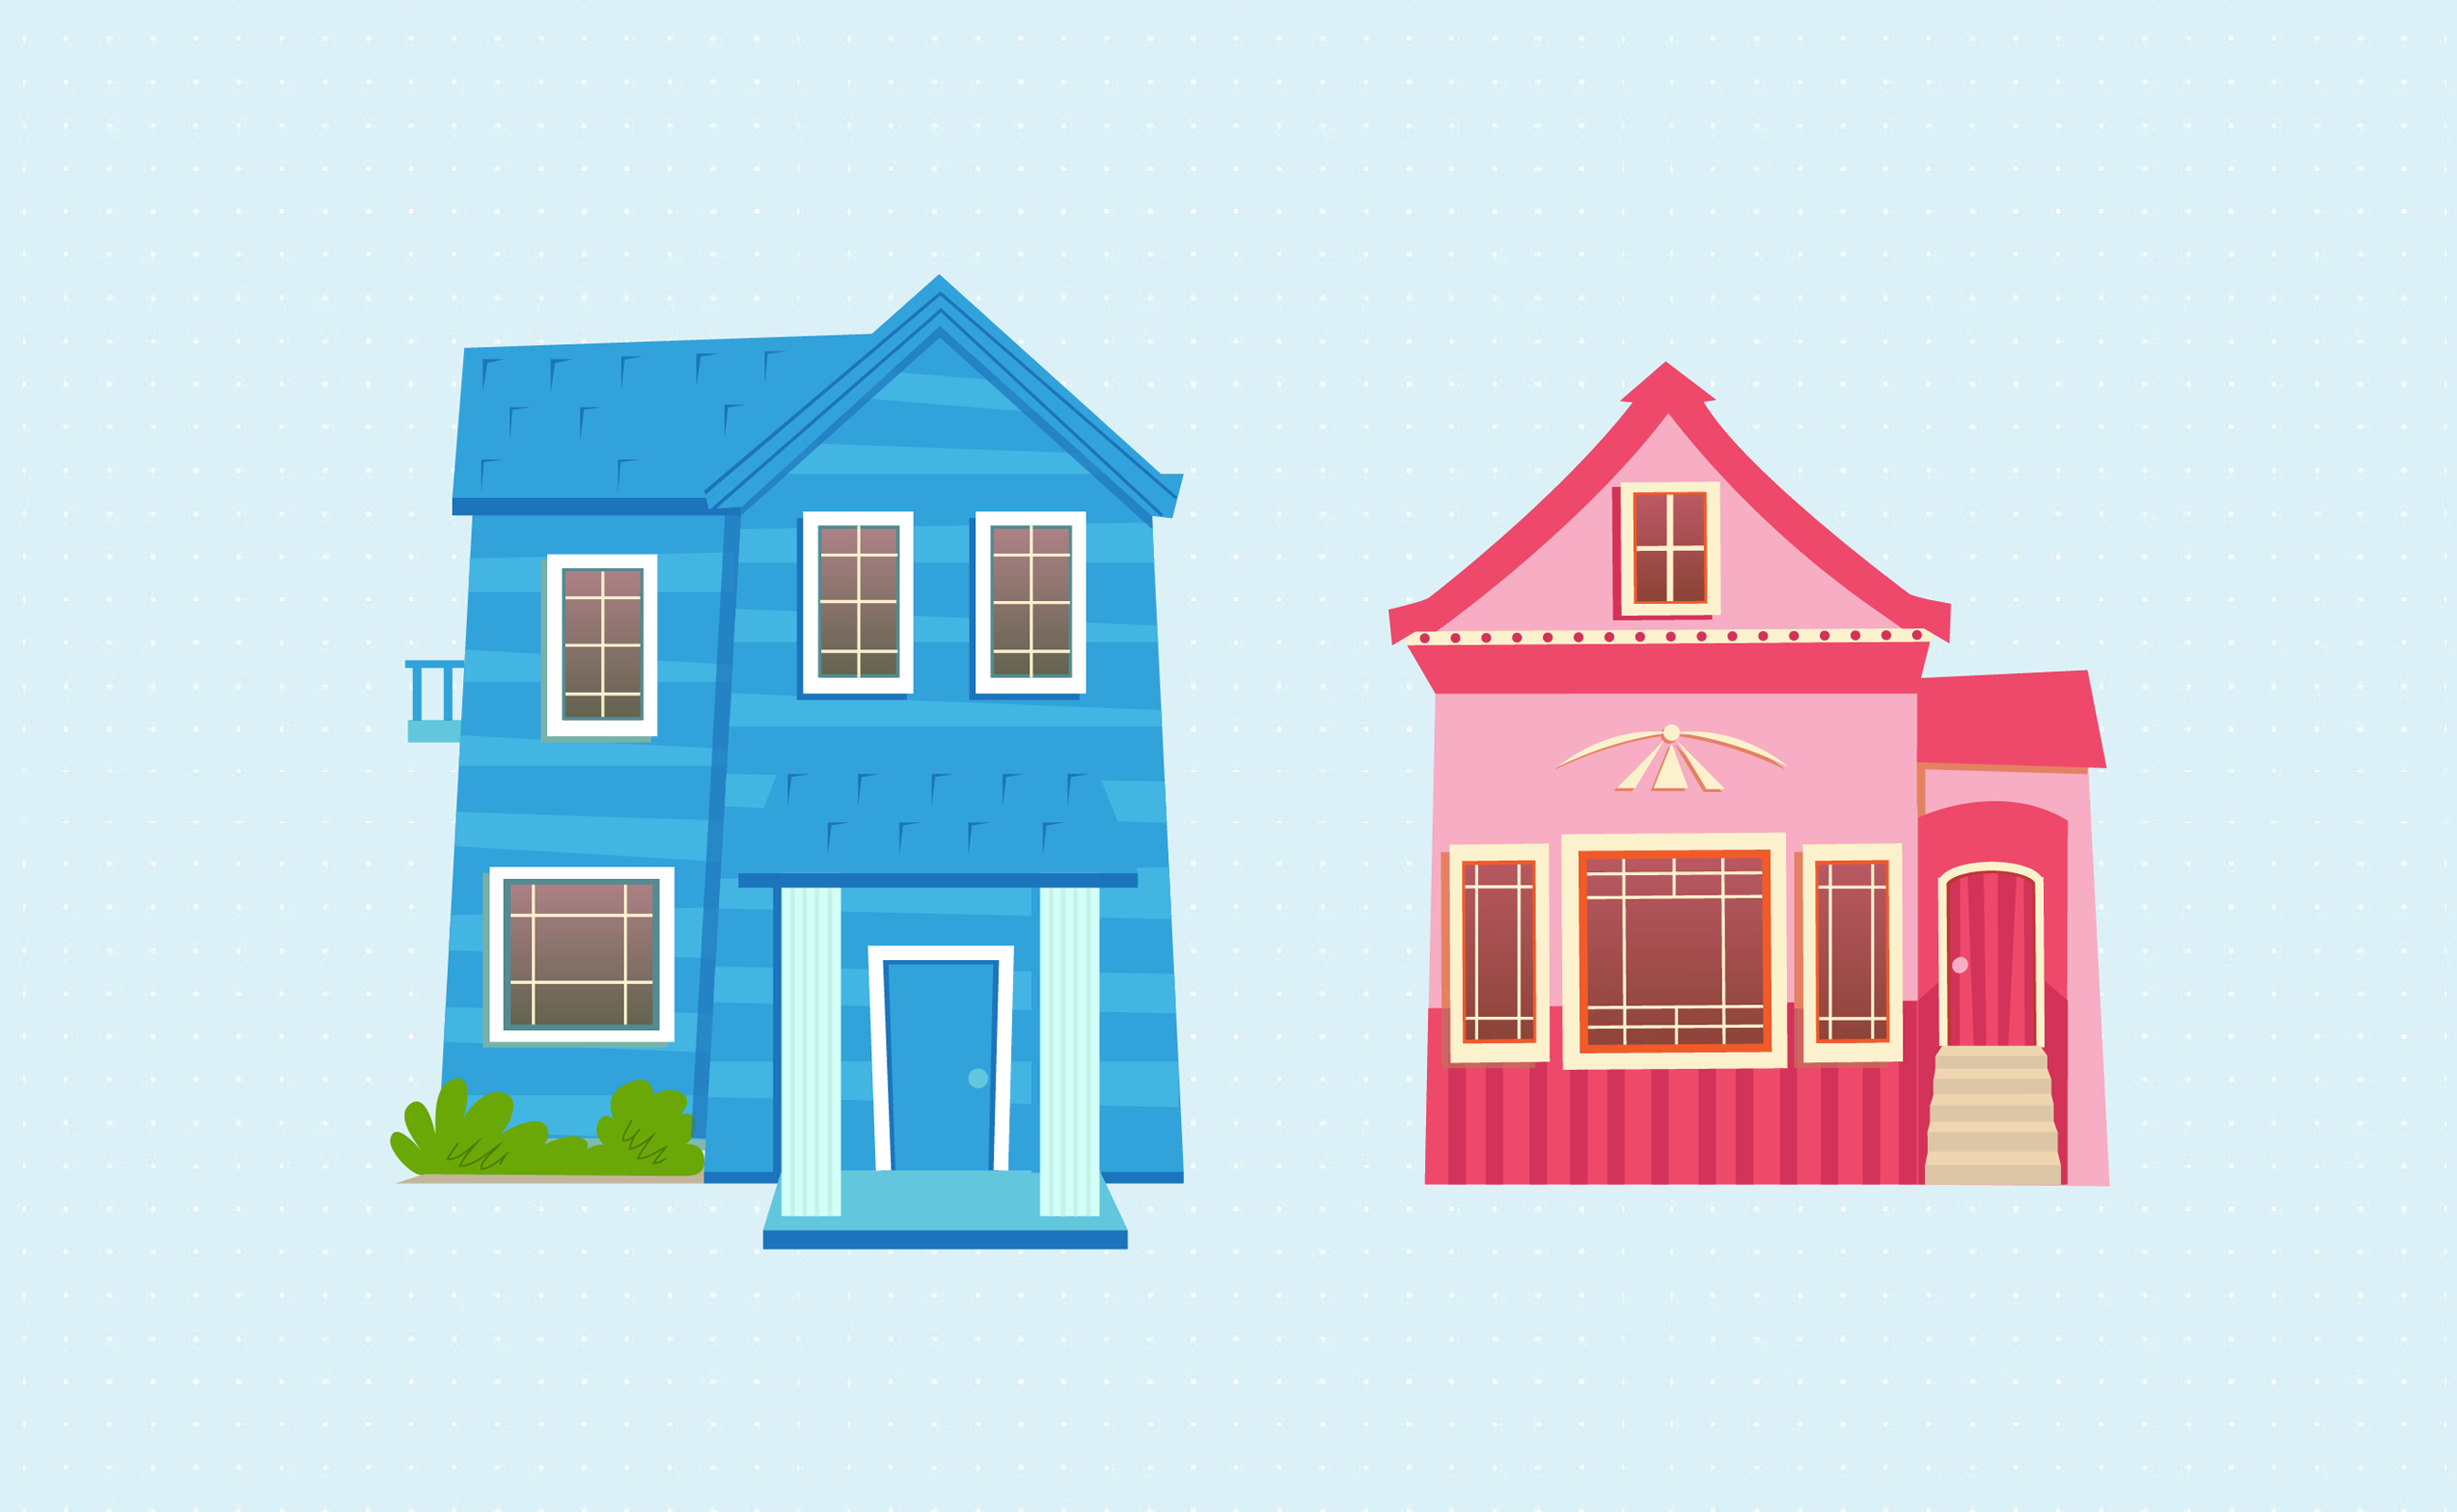 Two different houses.